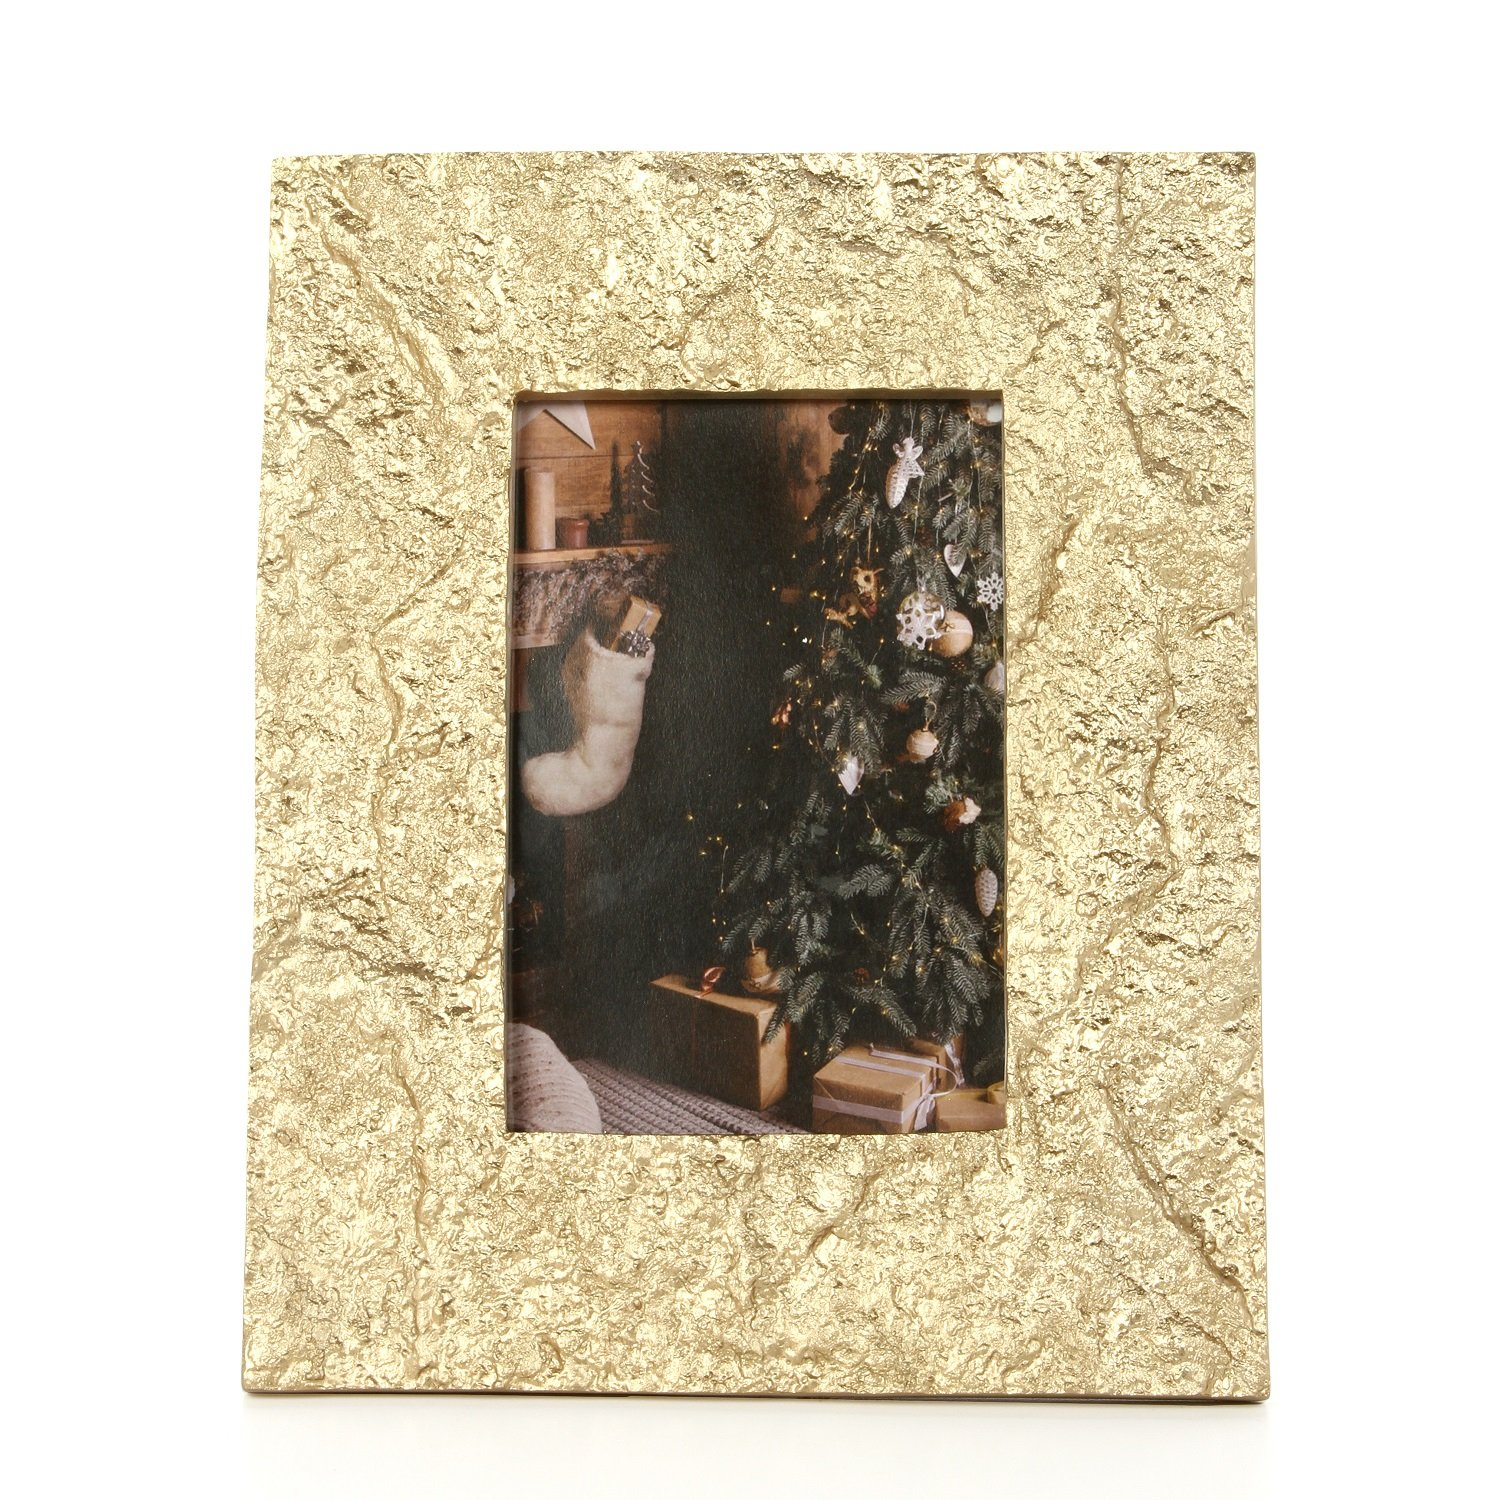 Hosley 4X6 Gold Photo Frame- 9'' High. Ideal Gift for Home, Wedding, Party. Home Office, Spa P2